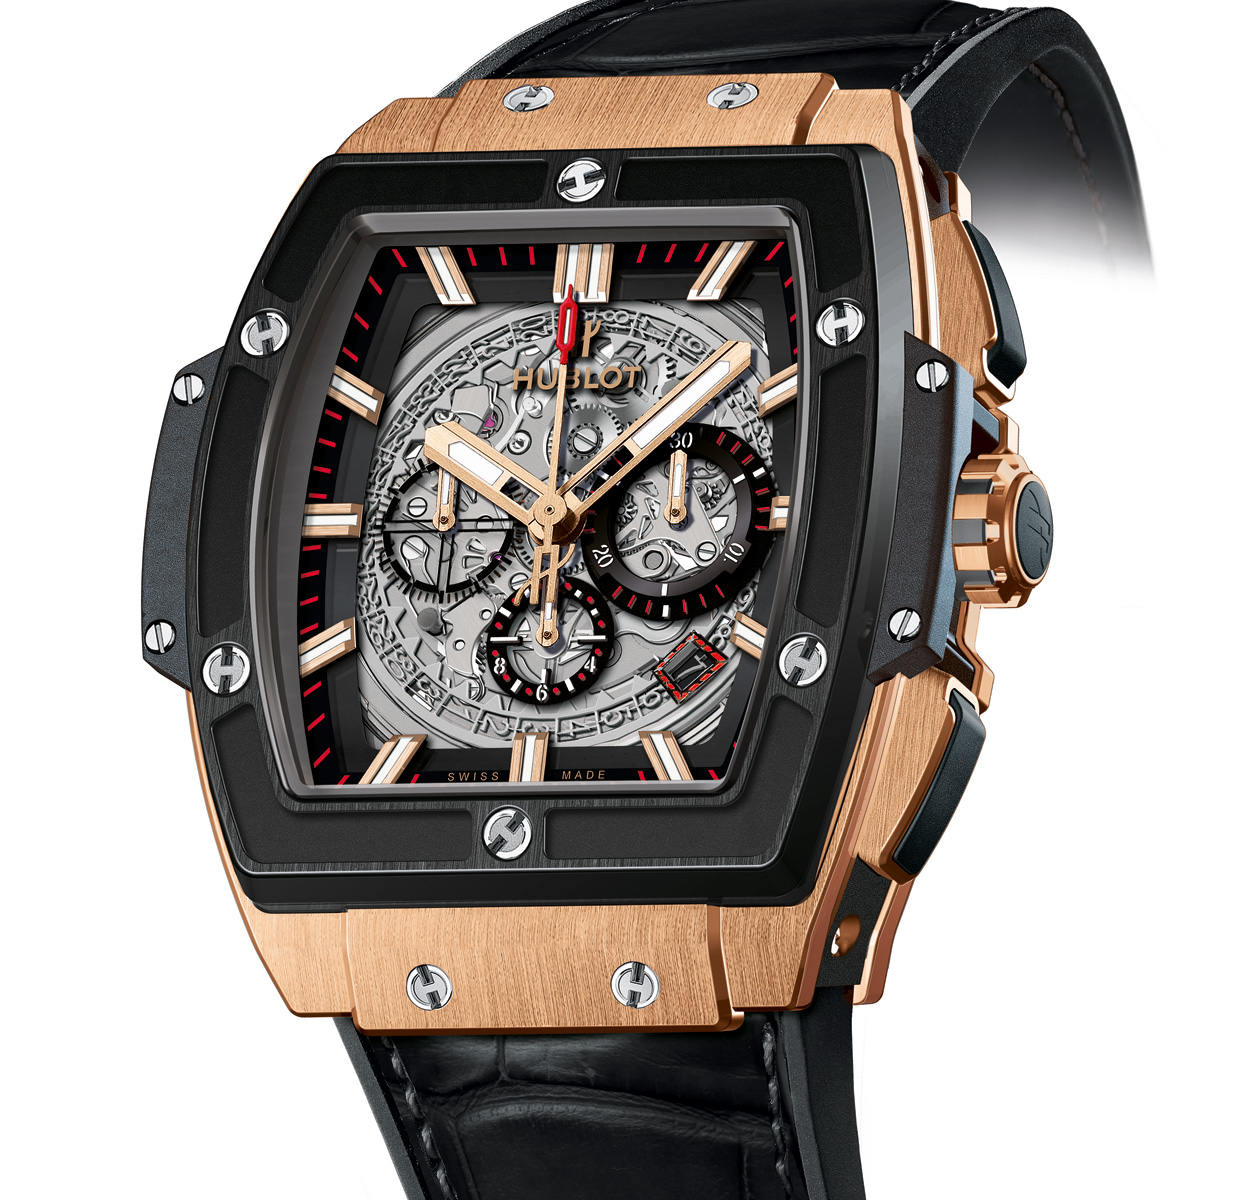 Movement Replica Swiss Watch The Hublot Replica Swiss Movement Big Bang Powered By The Zenith